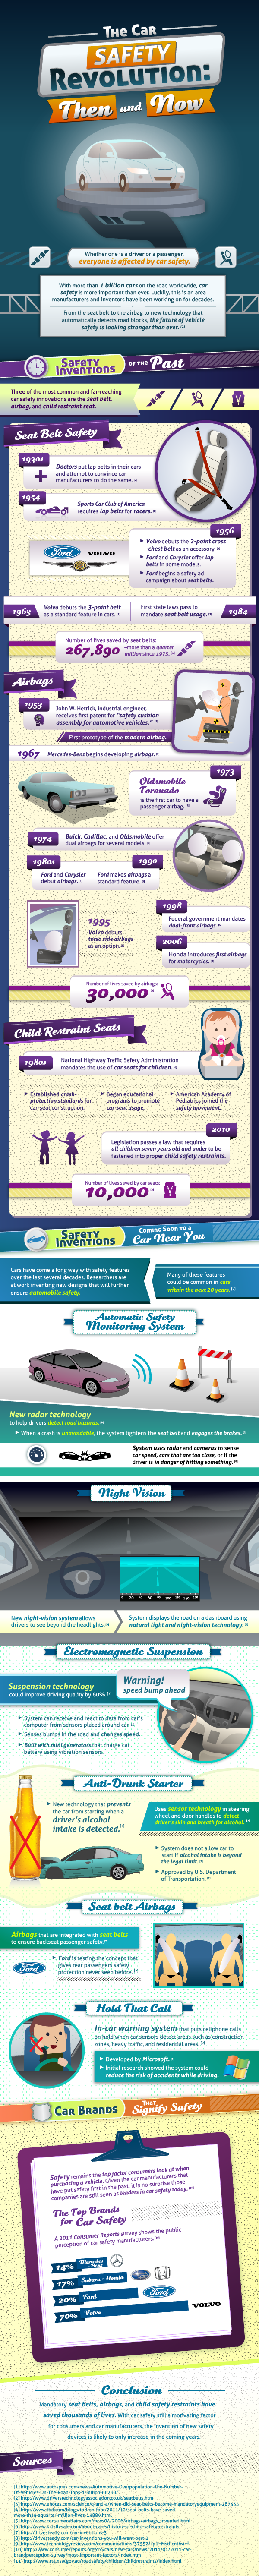 The car safety revolution